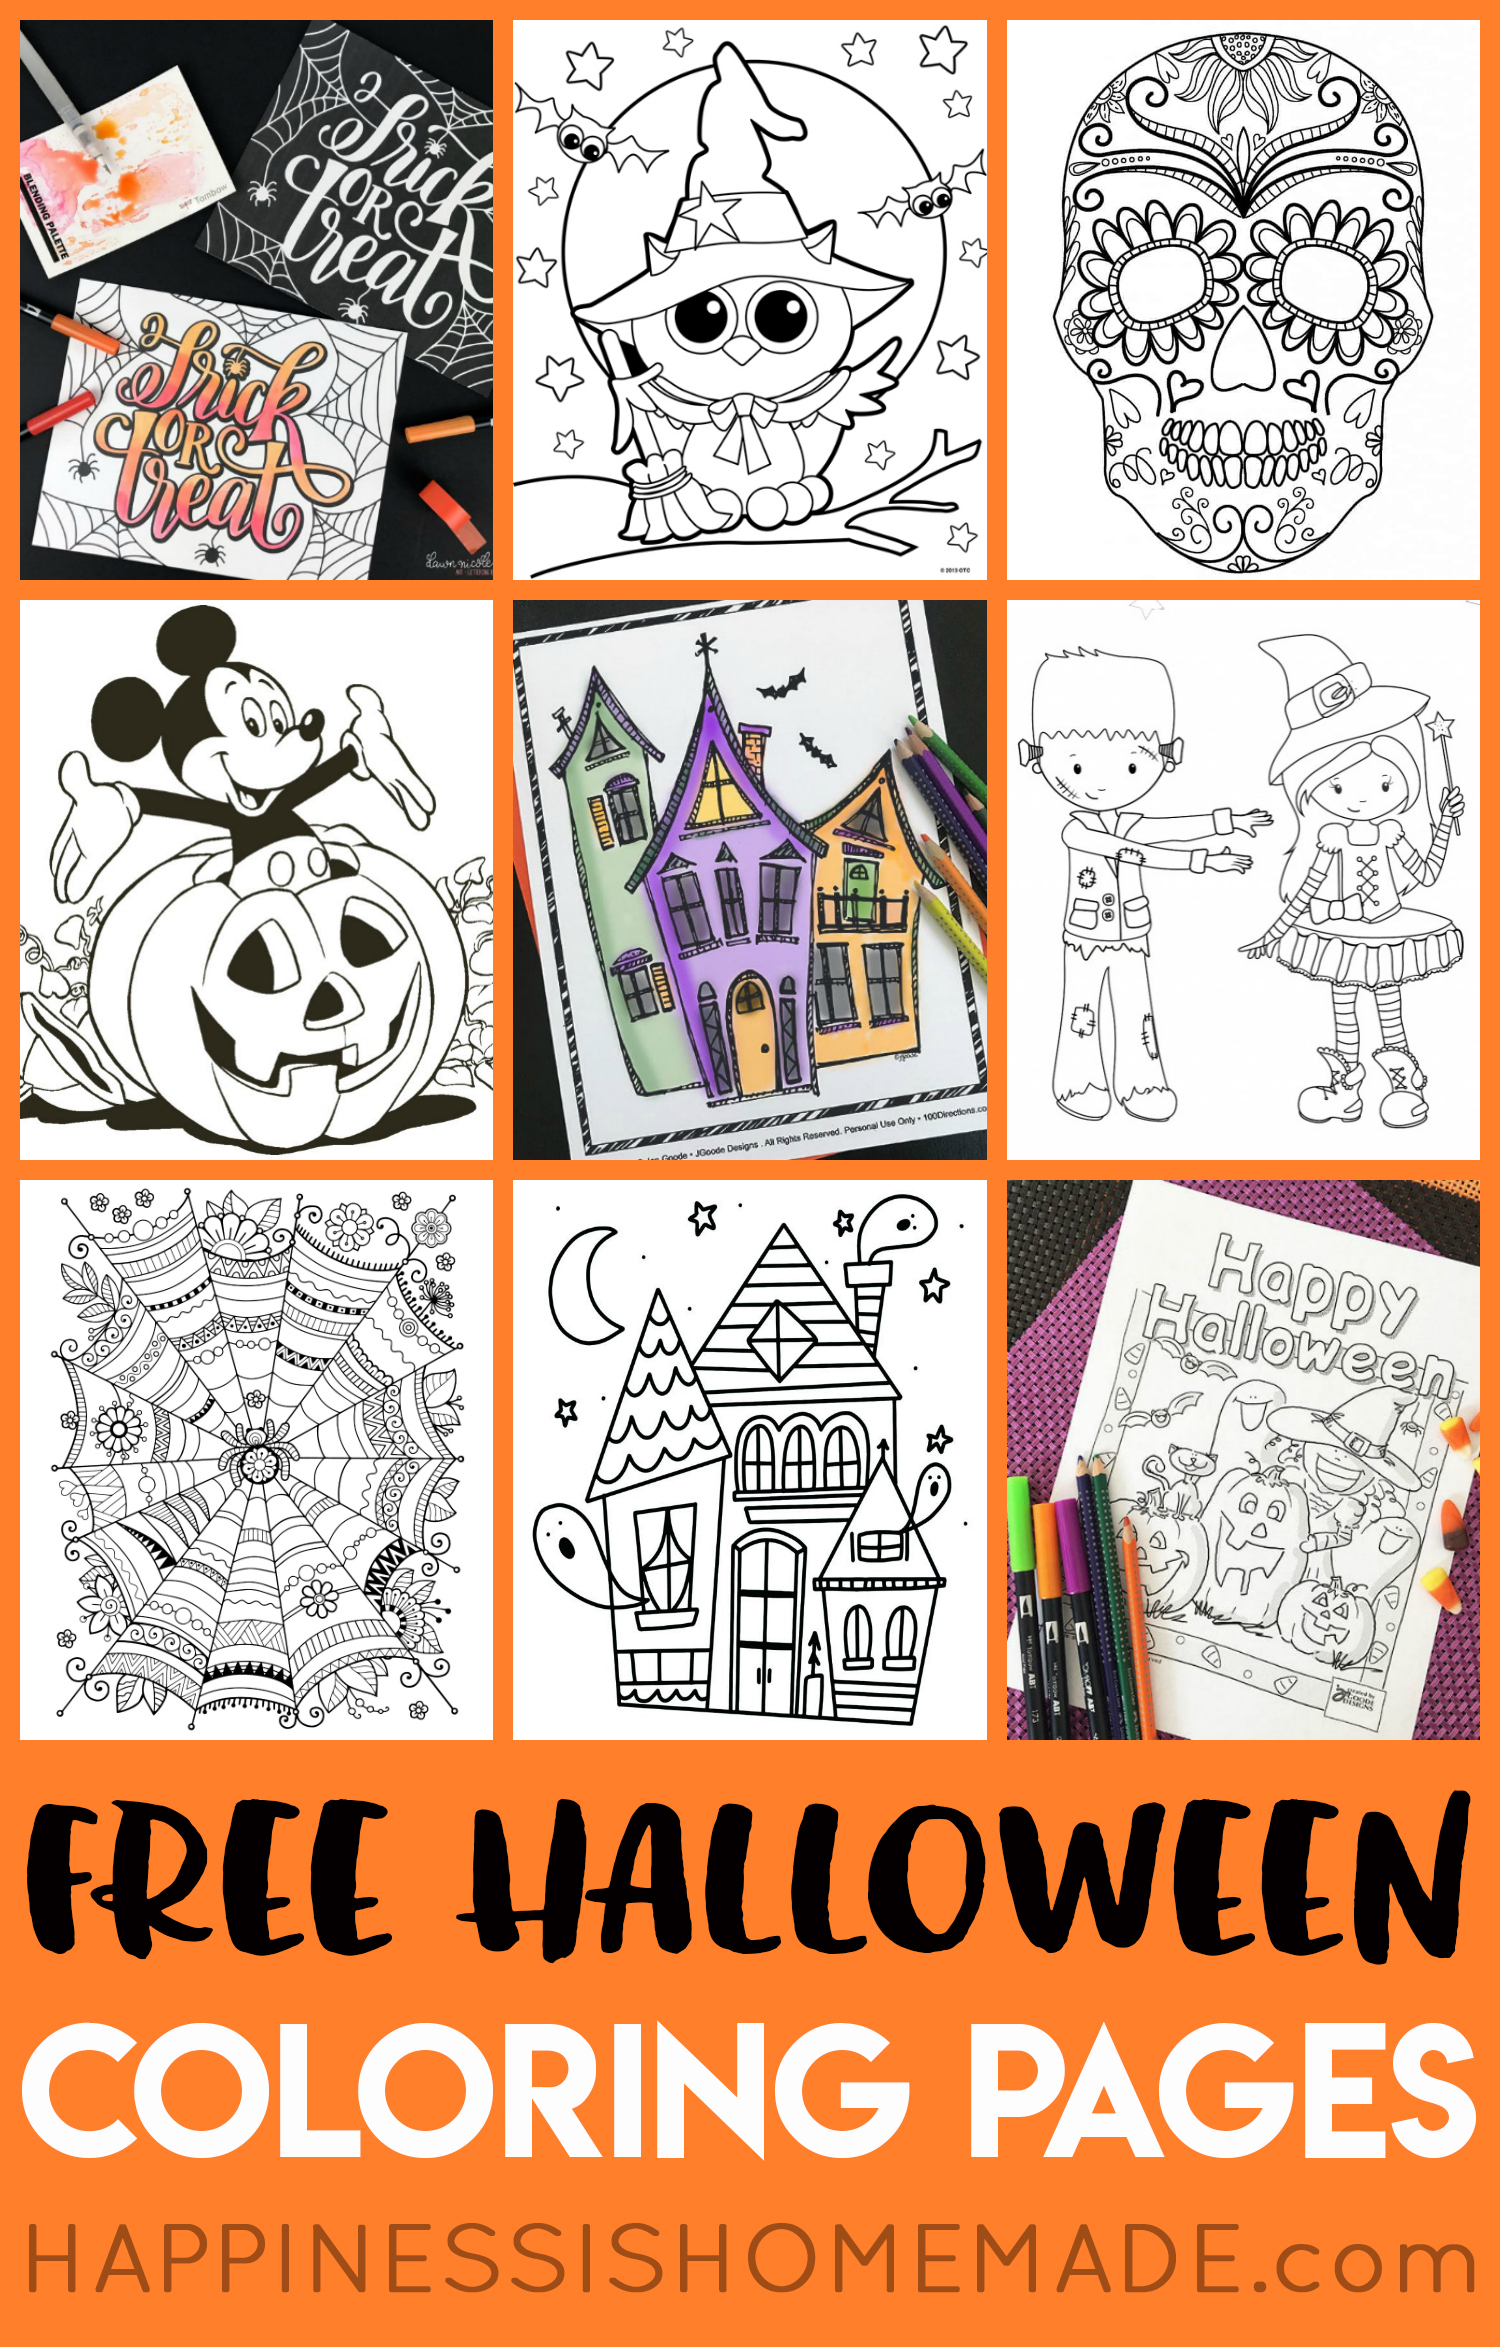 Free Halloween Coloring Pages For Adults & Kids - Happiness Is Homemade - Free Printable Halloween Coloring Pages